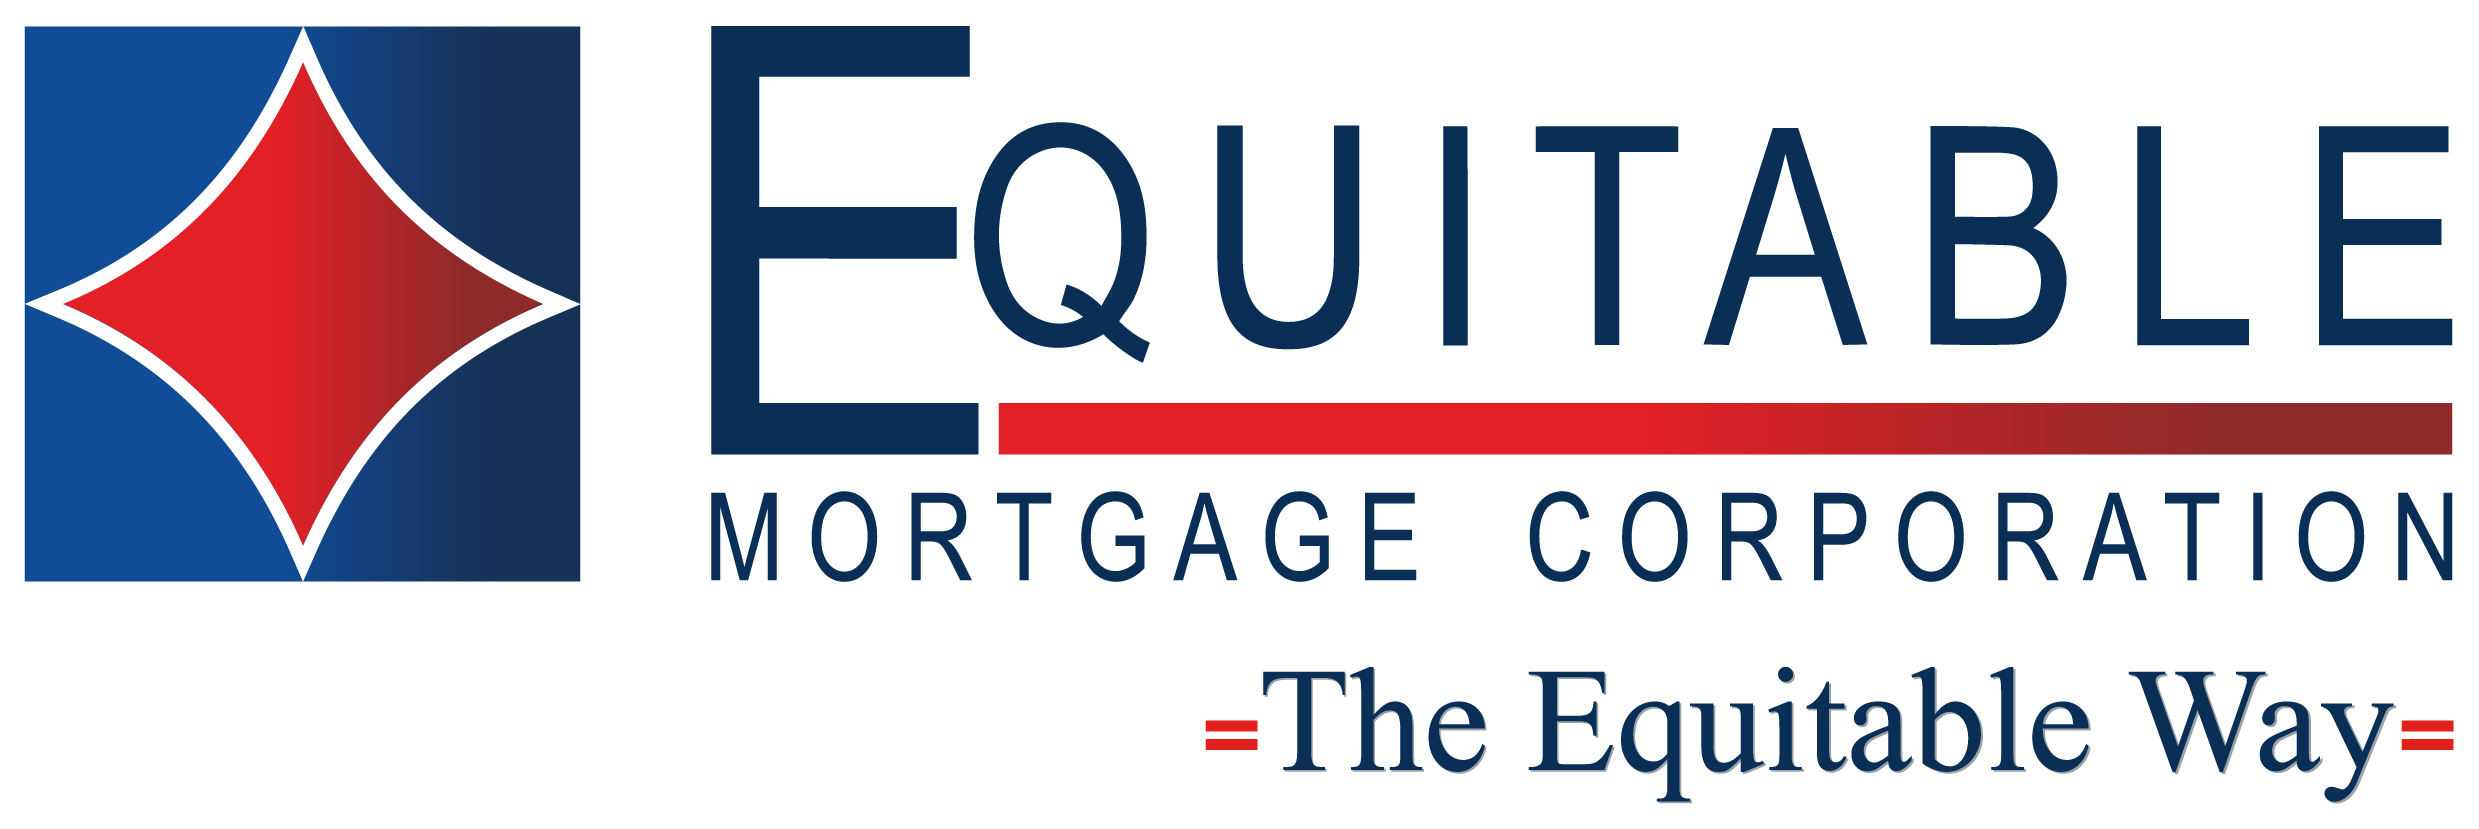 The Equitable Way